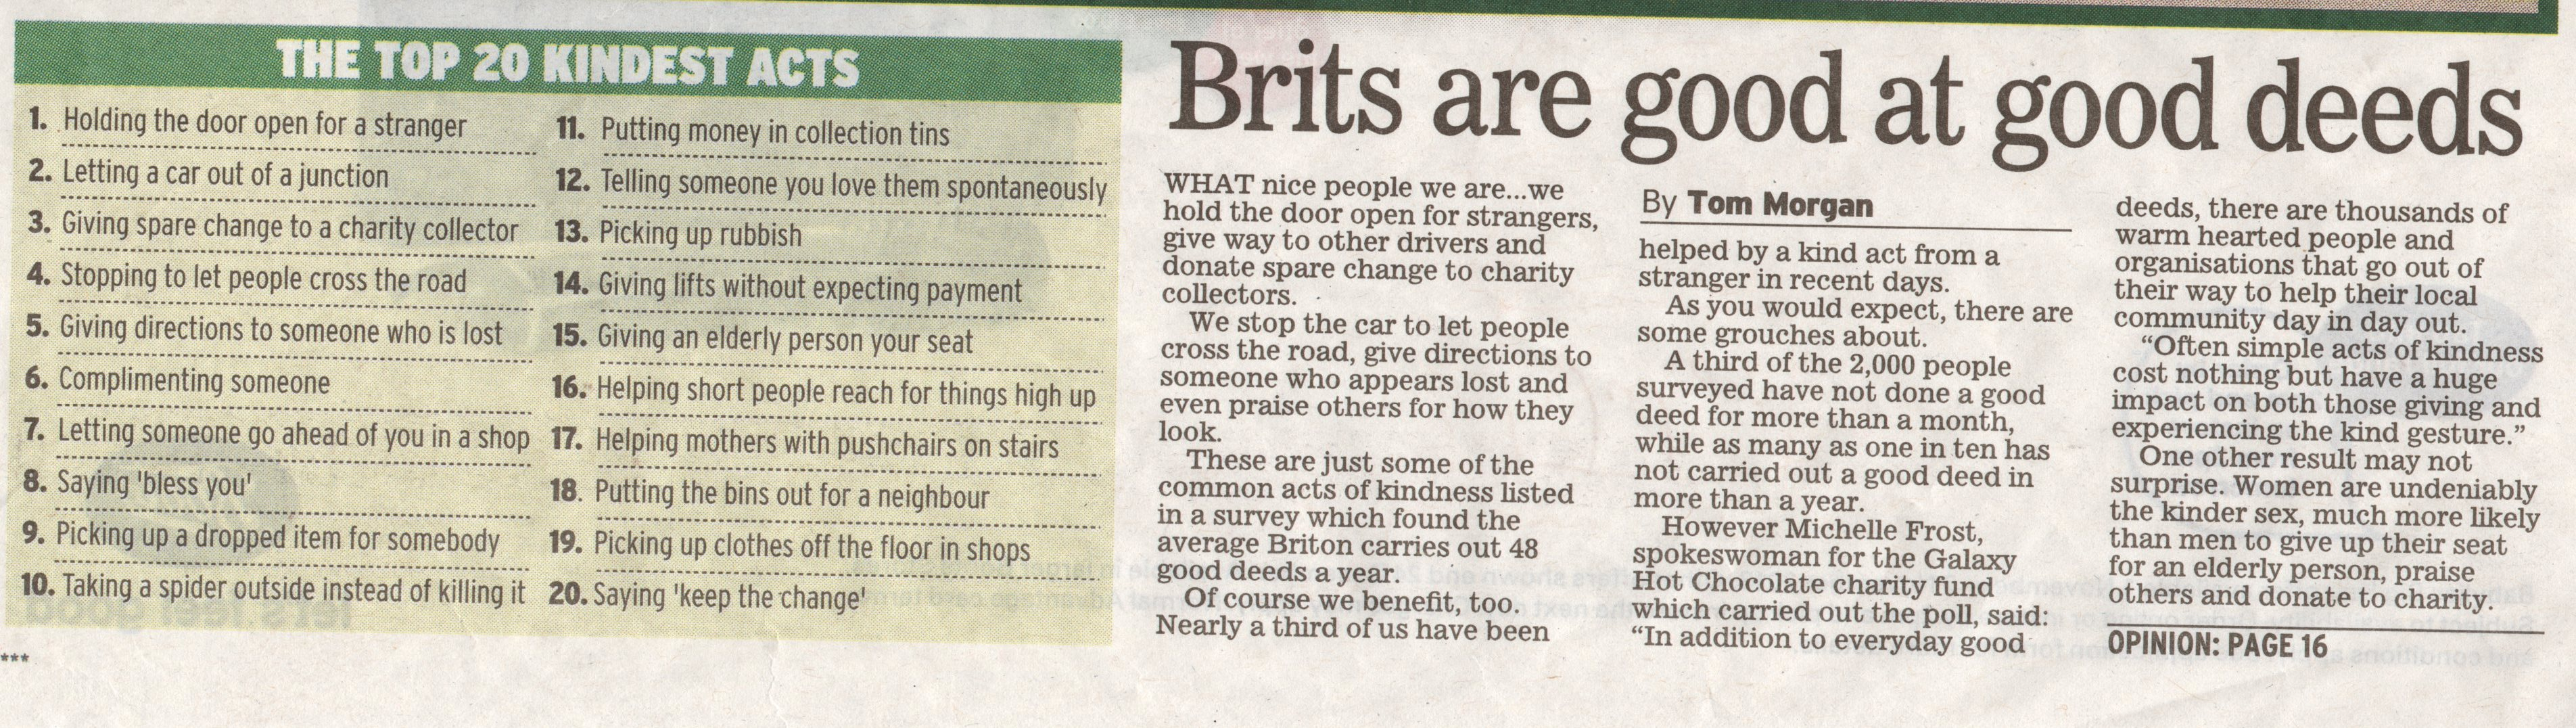 Brits are good at good deeds